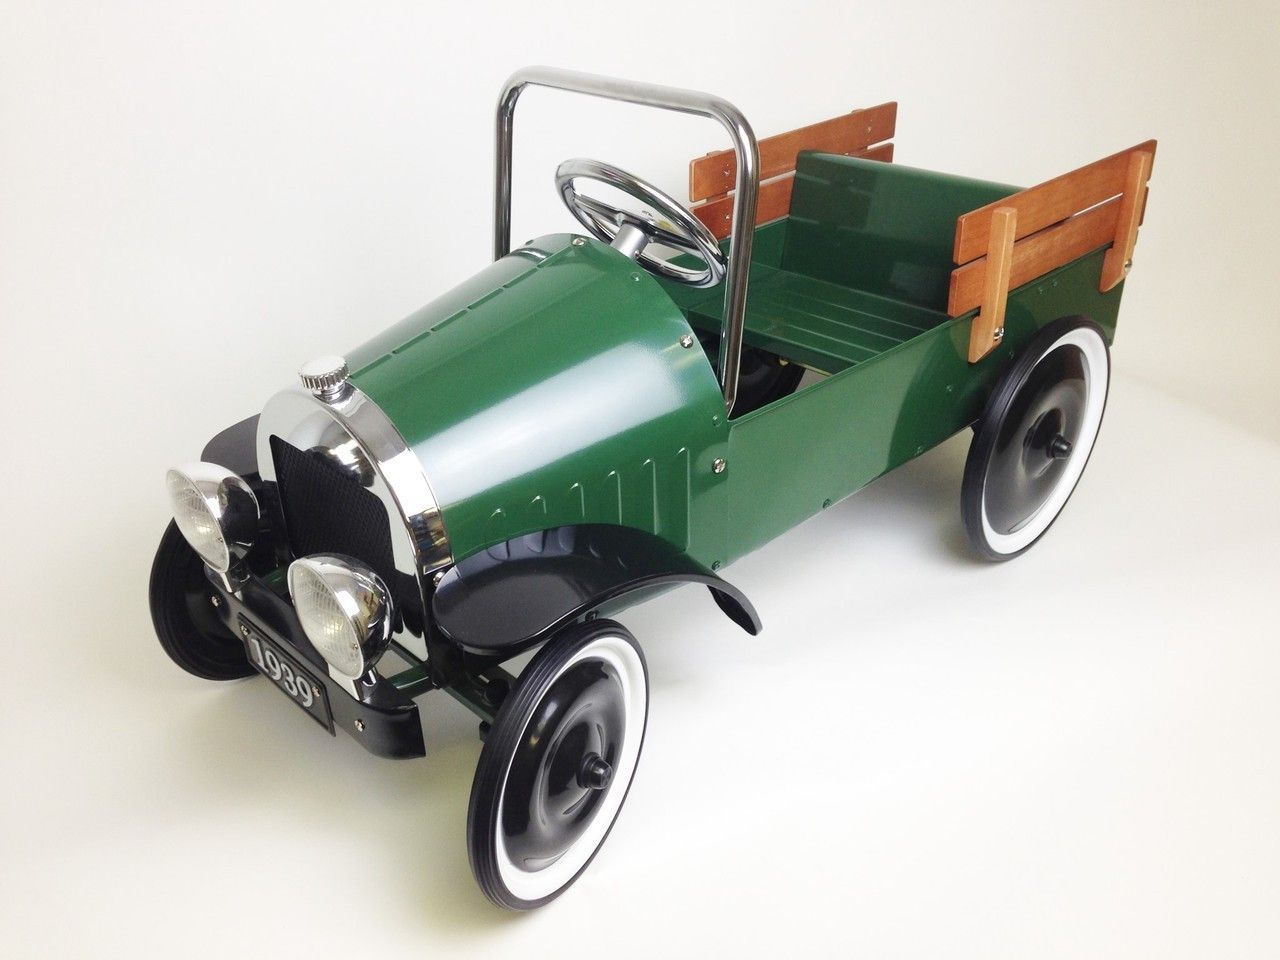 Mini jeep car toys  CLASSIC JALOPY PICKUP TRUCK PEDAL CAR  GREEN  Pick Up Truck